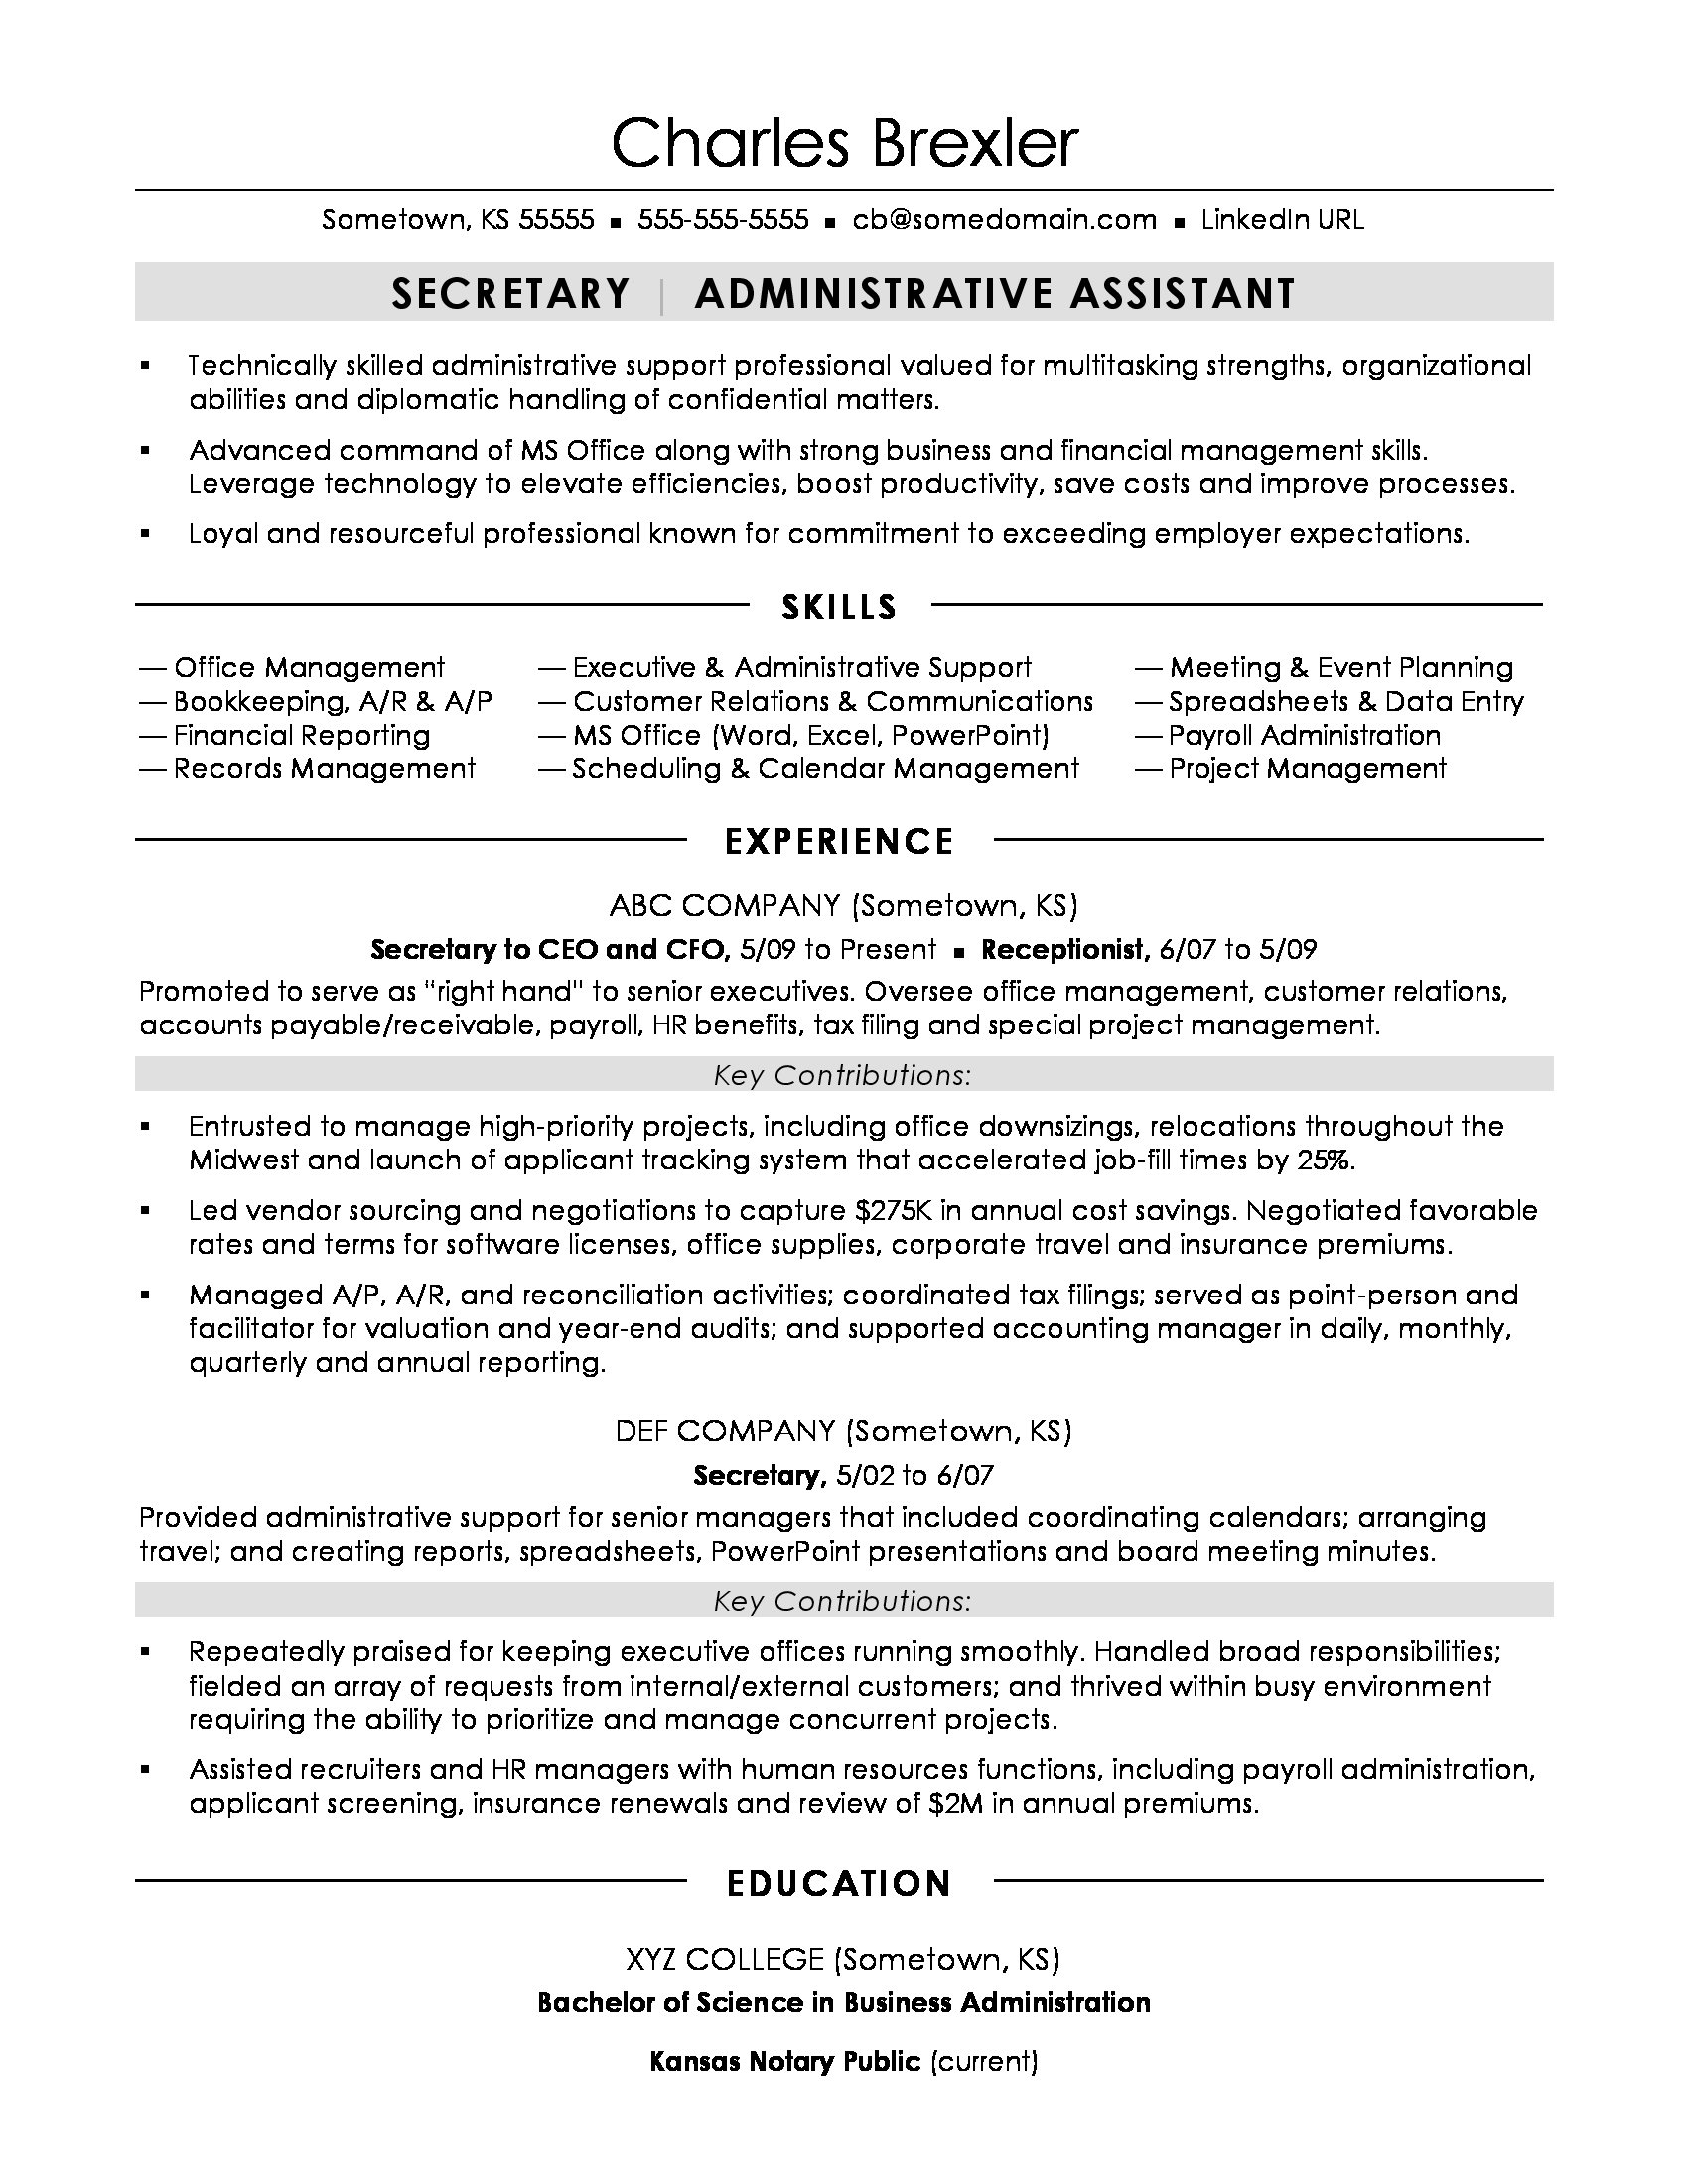 secretary resume sample - Resume Samples For Education Administration